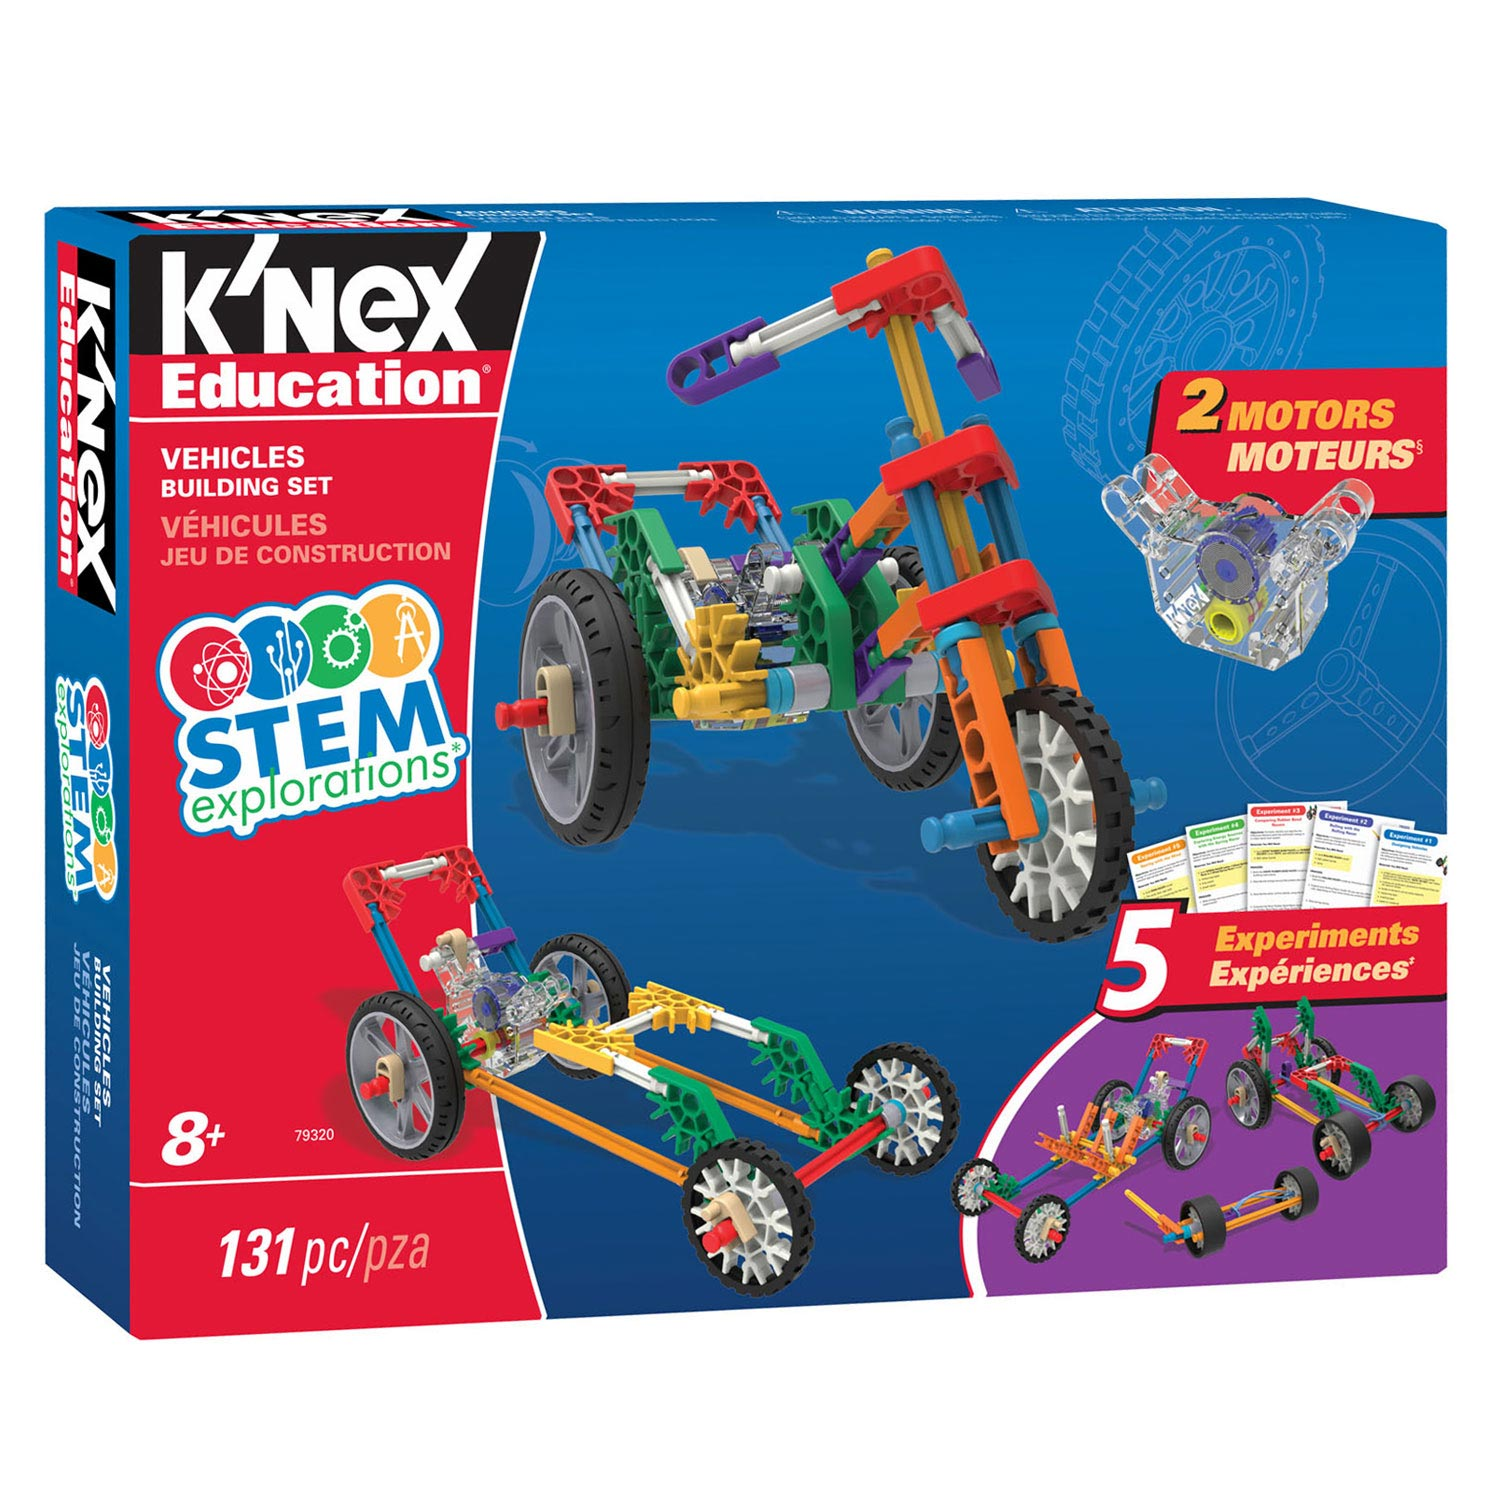 K'Nex Stem Explorations: Vehicles Building Sets